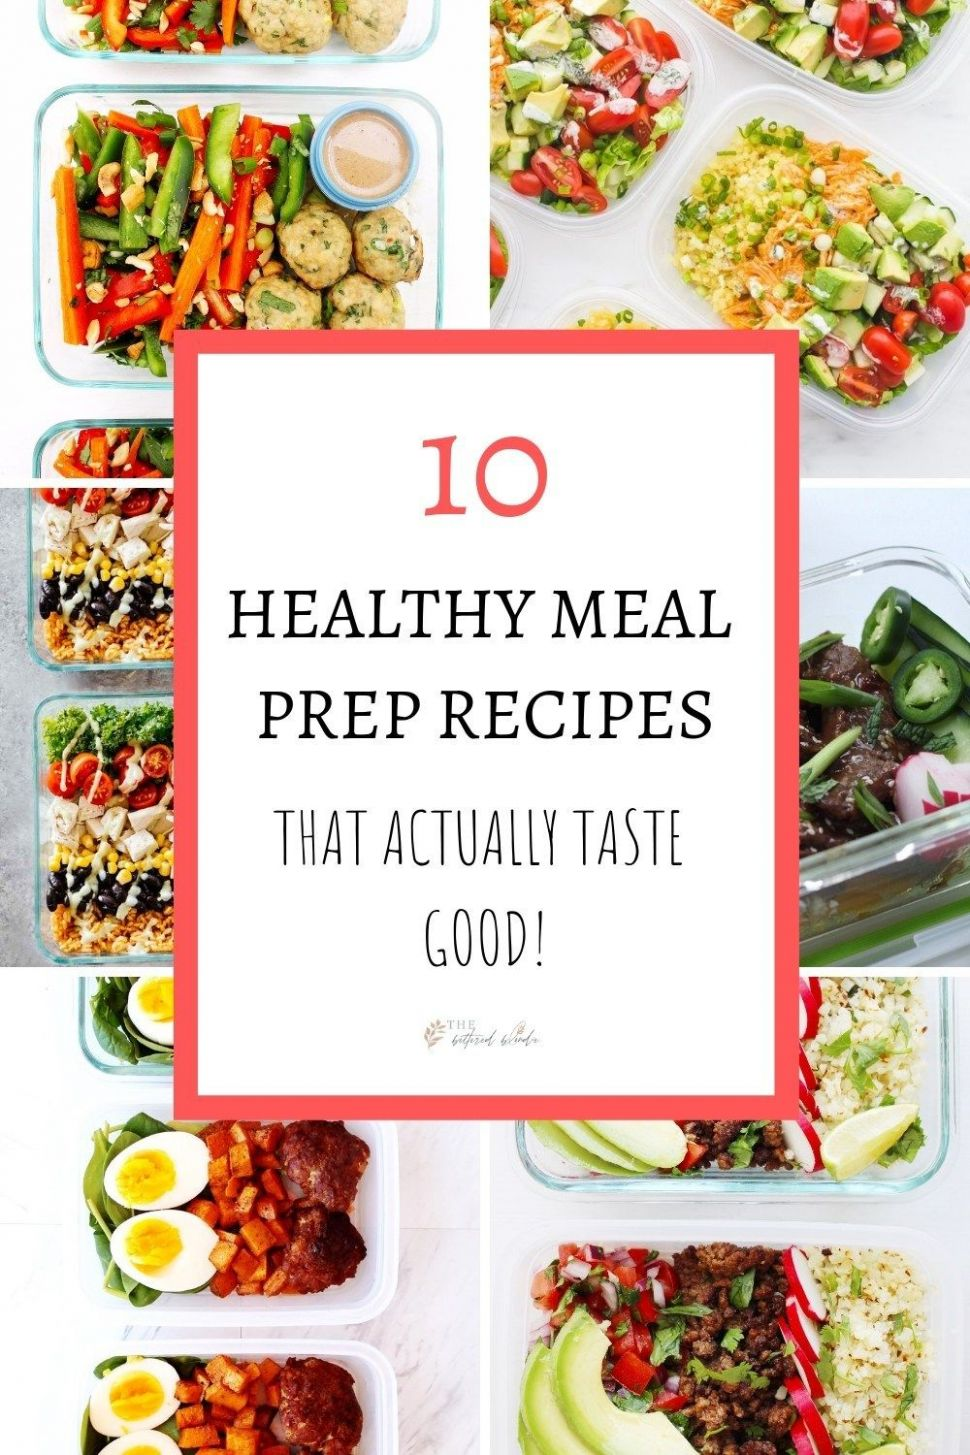 12 Healthy Meal Prep Recipes That Actually Taste Good | Good ...